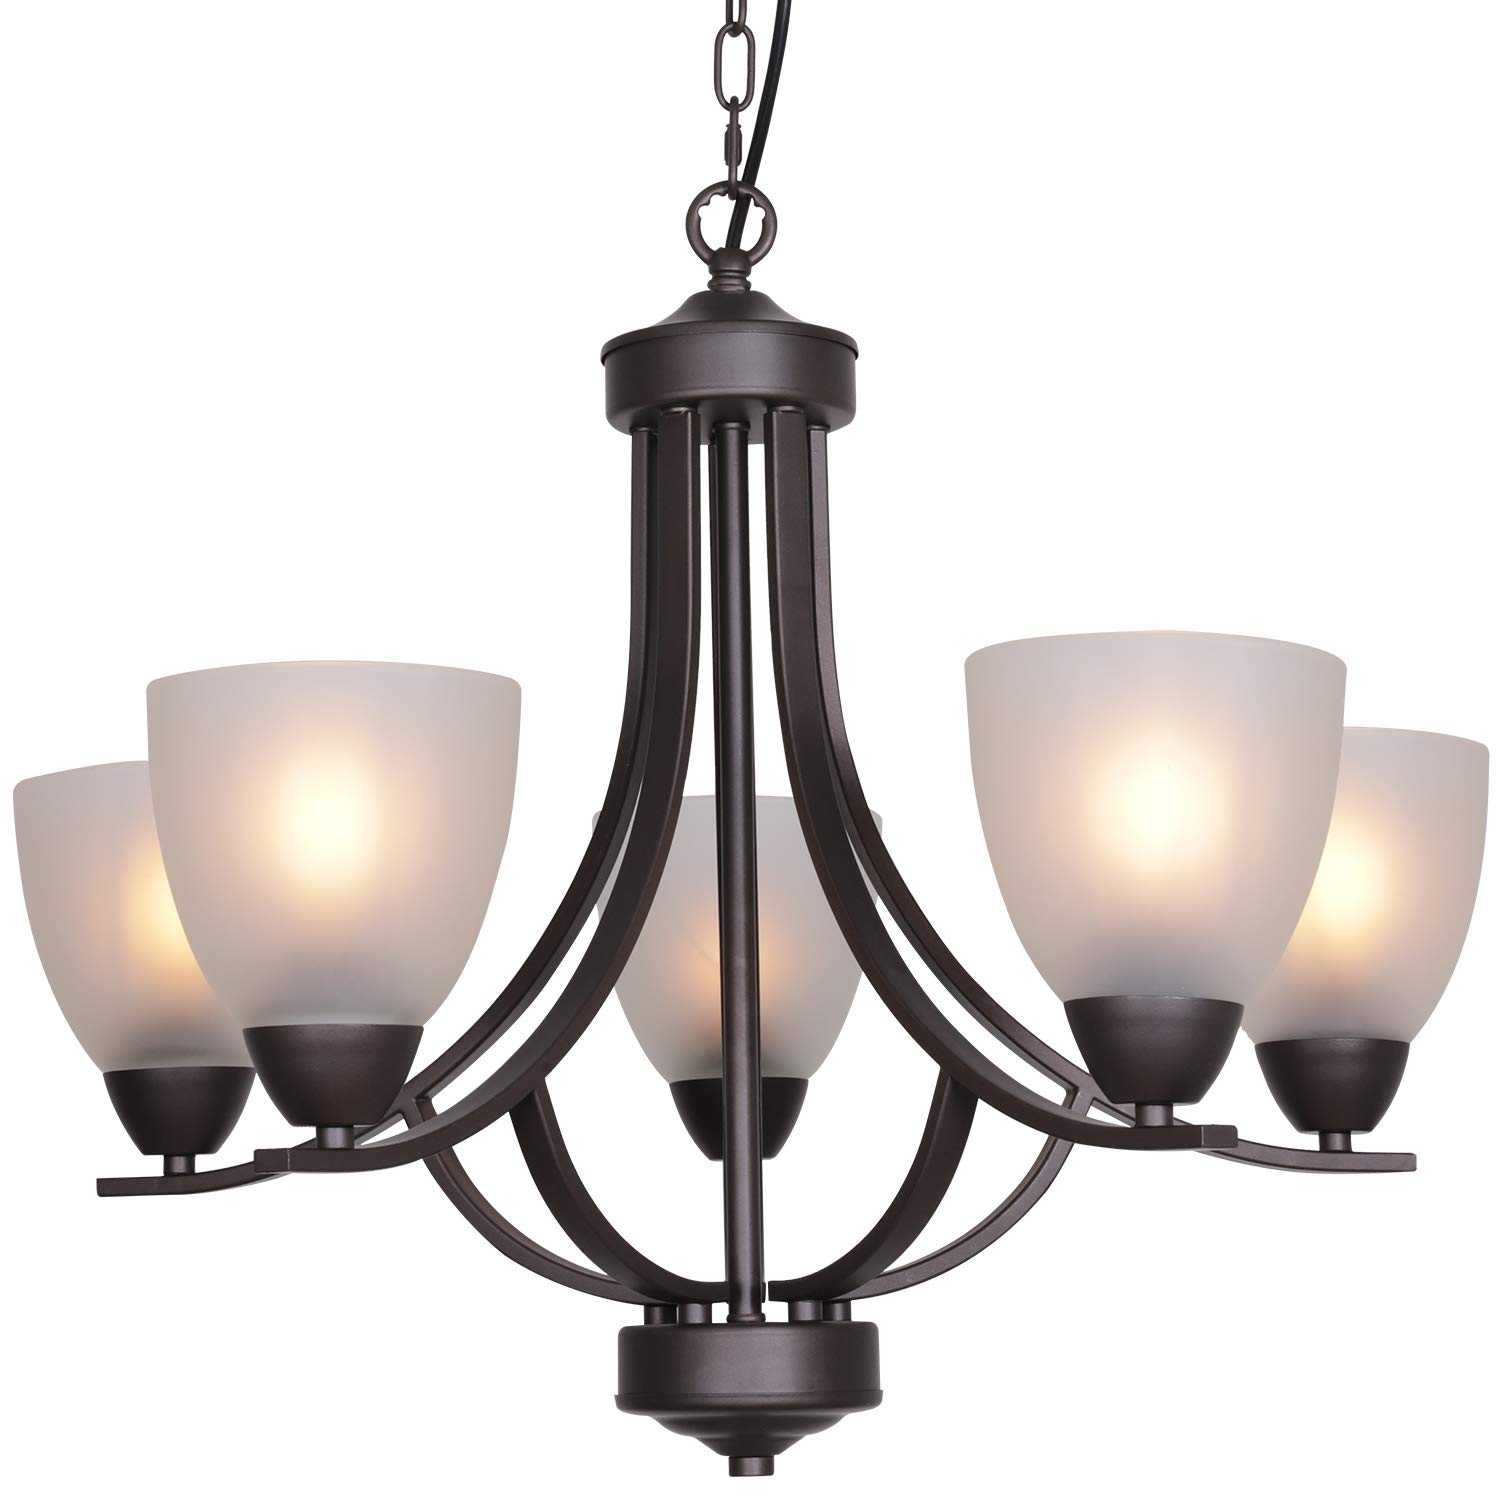 VINLUZ 5 Light Shaded Contemporary Chandeliers with Alabaster Glass Oil Rubbed Bronze Modern Light Fixtures Ceiling Hanging Rustic Pendant Lighting for Dining Room Foyer Bedroom Living Room